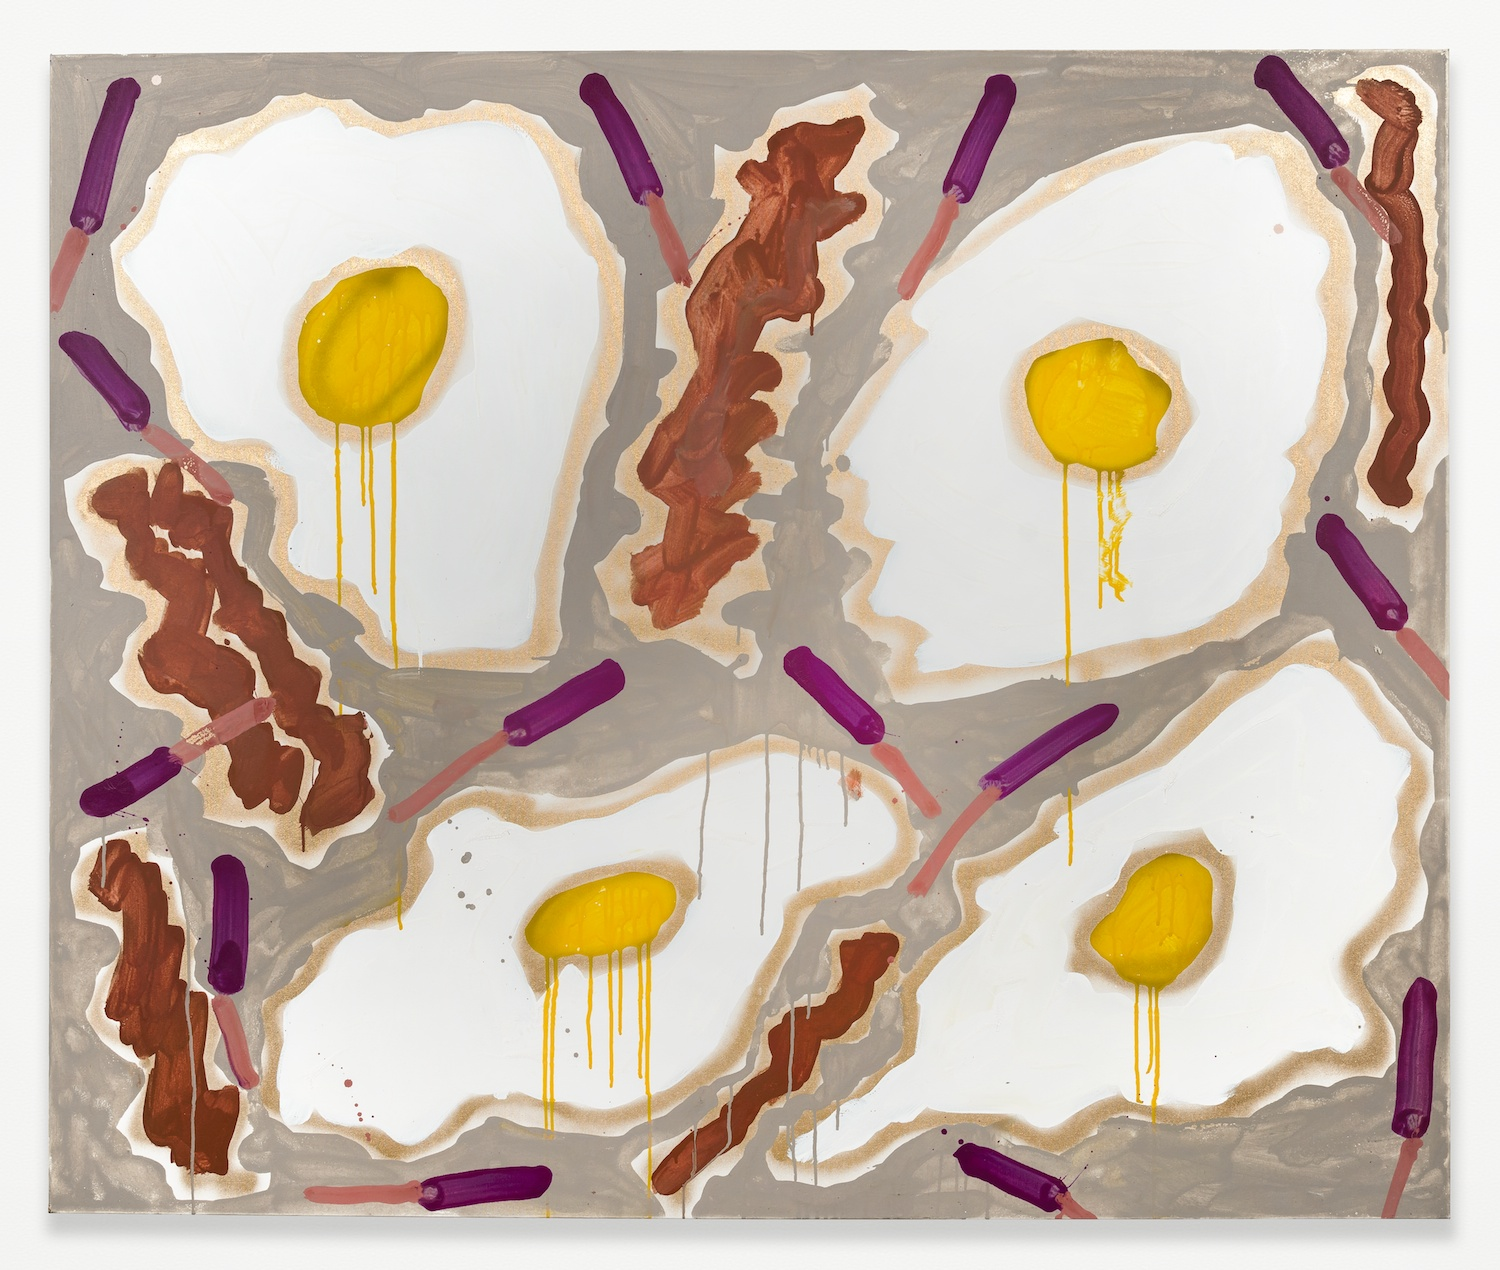 Katherine Bernhardt  Bacon and Eggs  2014 Acrylic and spray paint on canvas 60h x 27w in KBern002